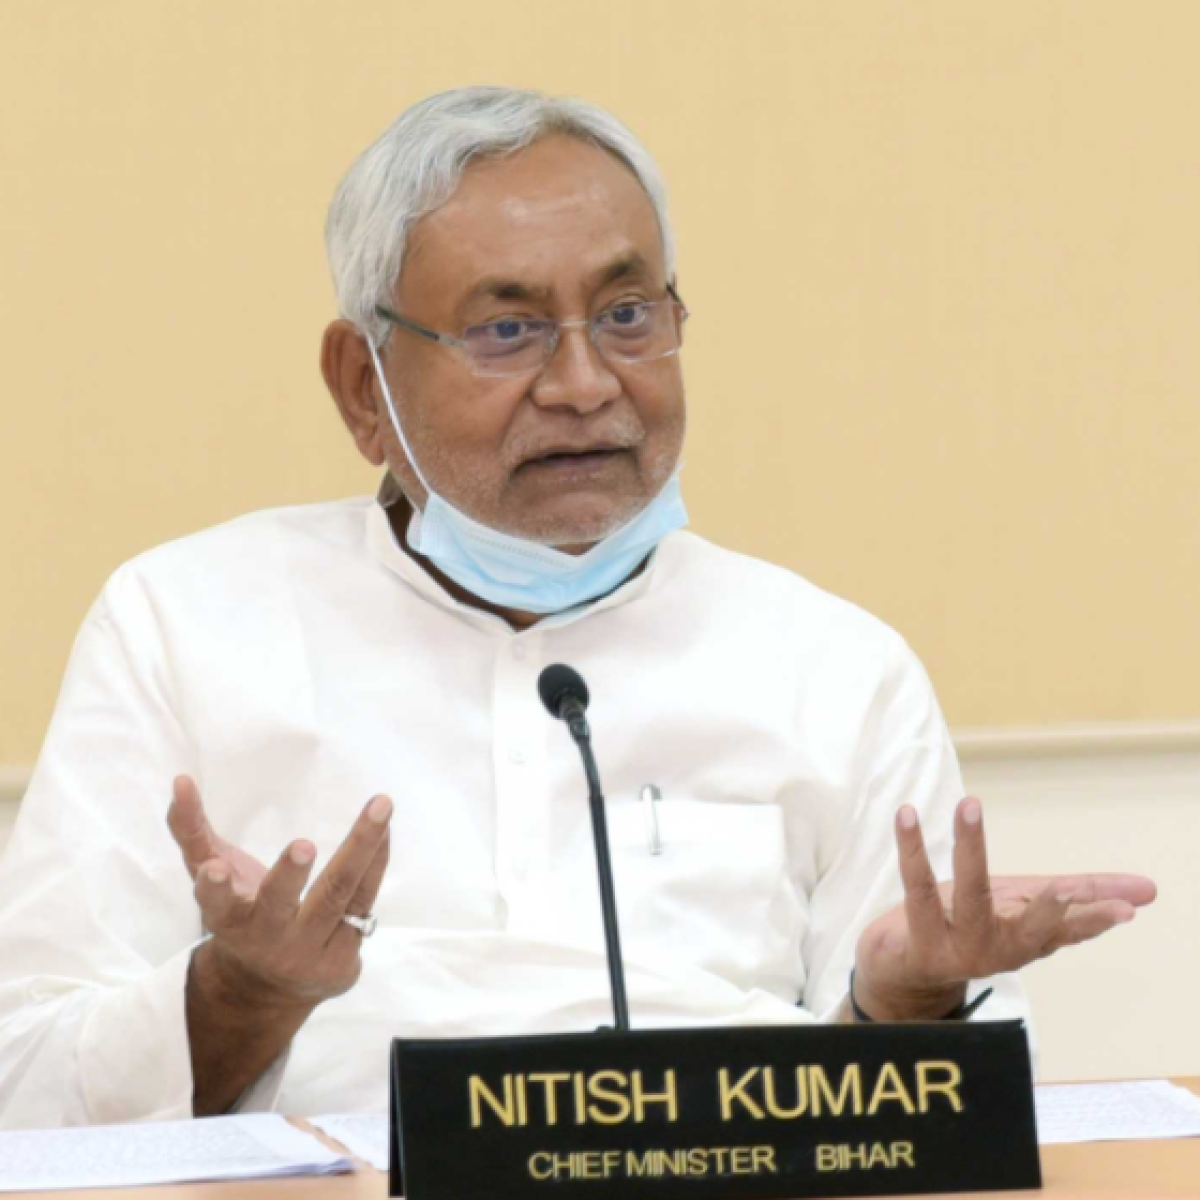 'I congratulate central govt for presenting balanced budget': Nitish Kumar on Union Budget 2021